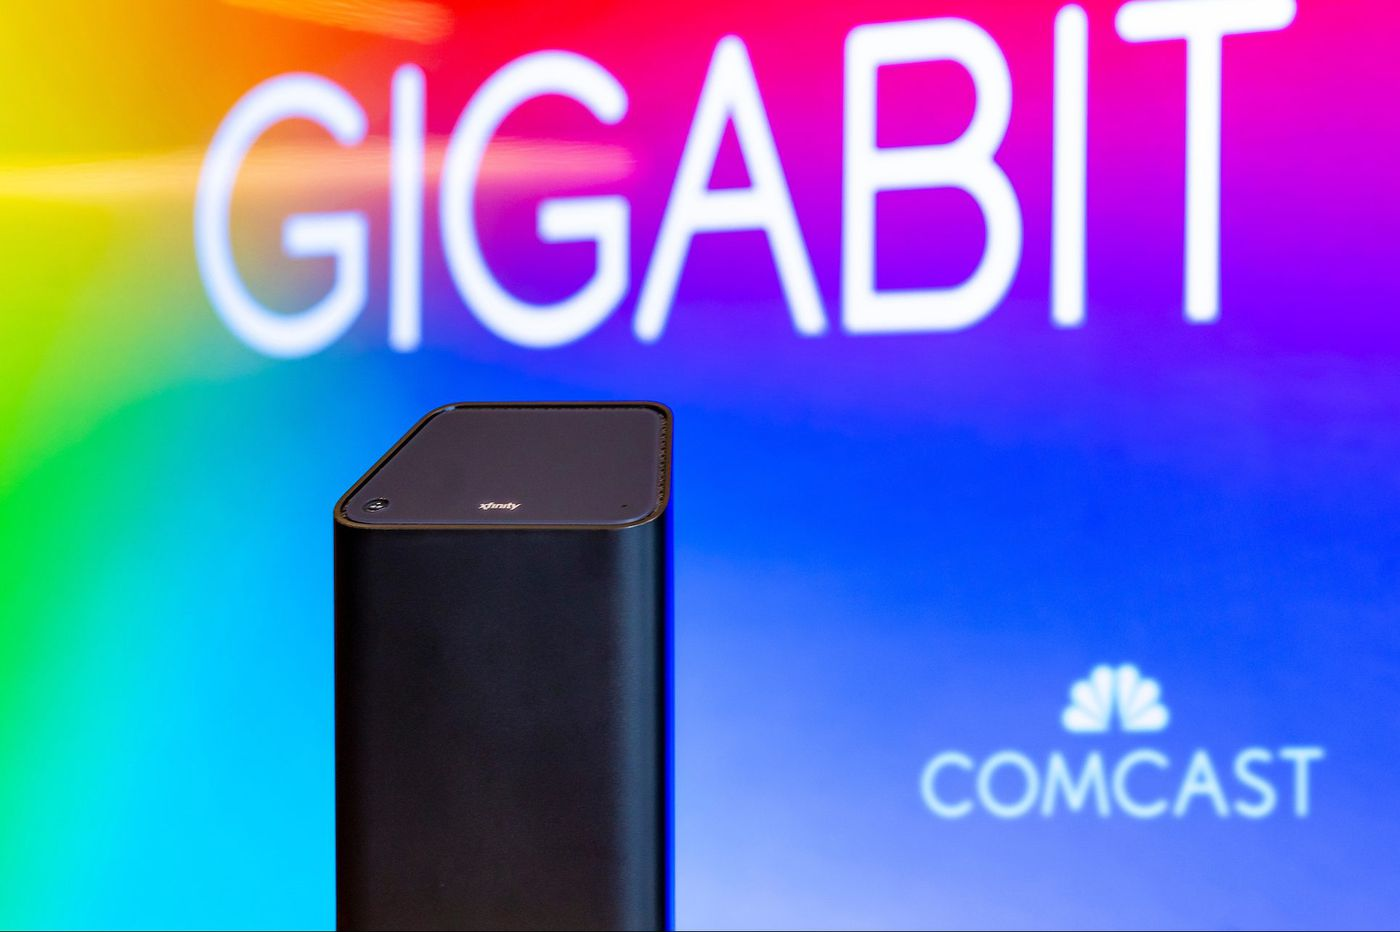 Comcast says that almost 58 million homes can get gigabit service